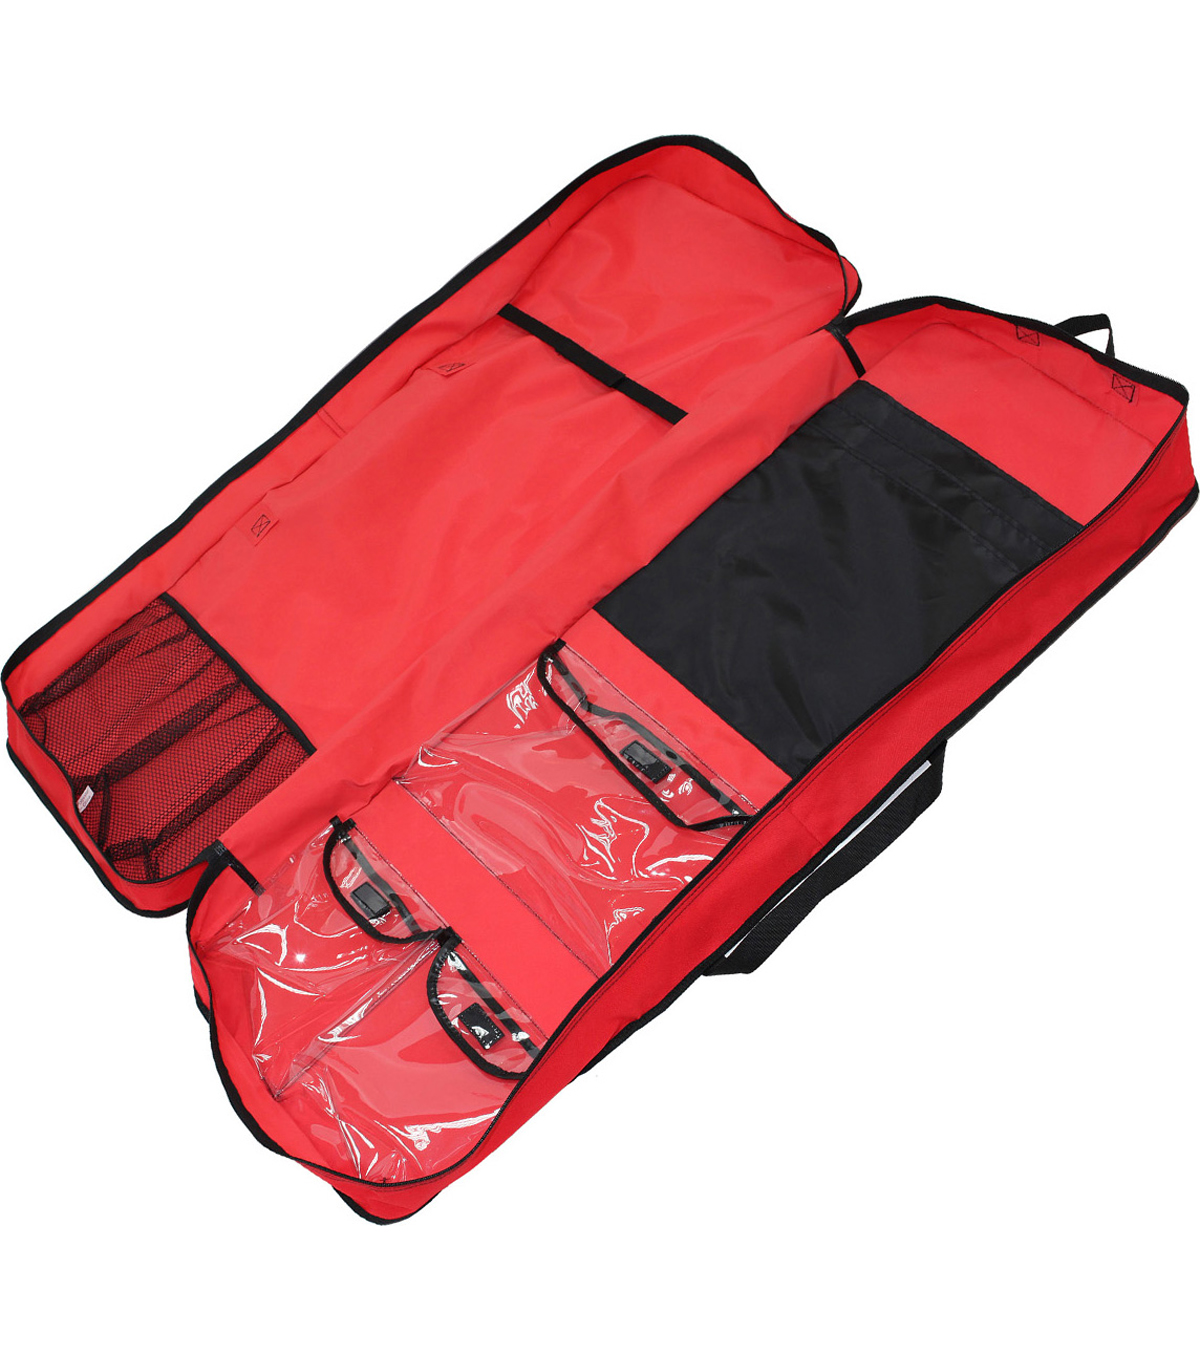 Gift Wrap Storage Organizer-Red